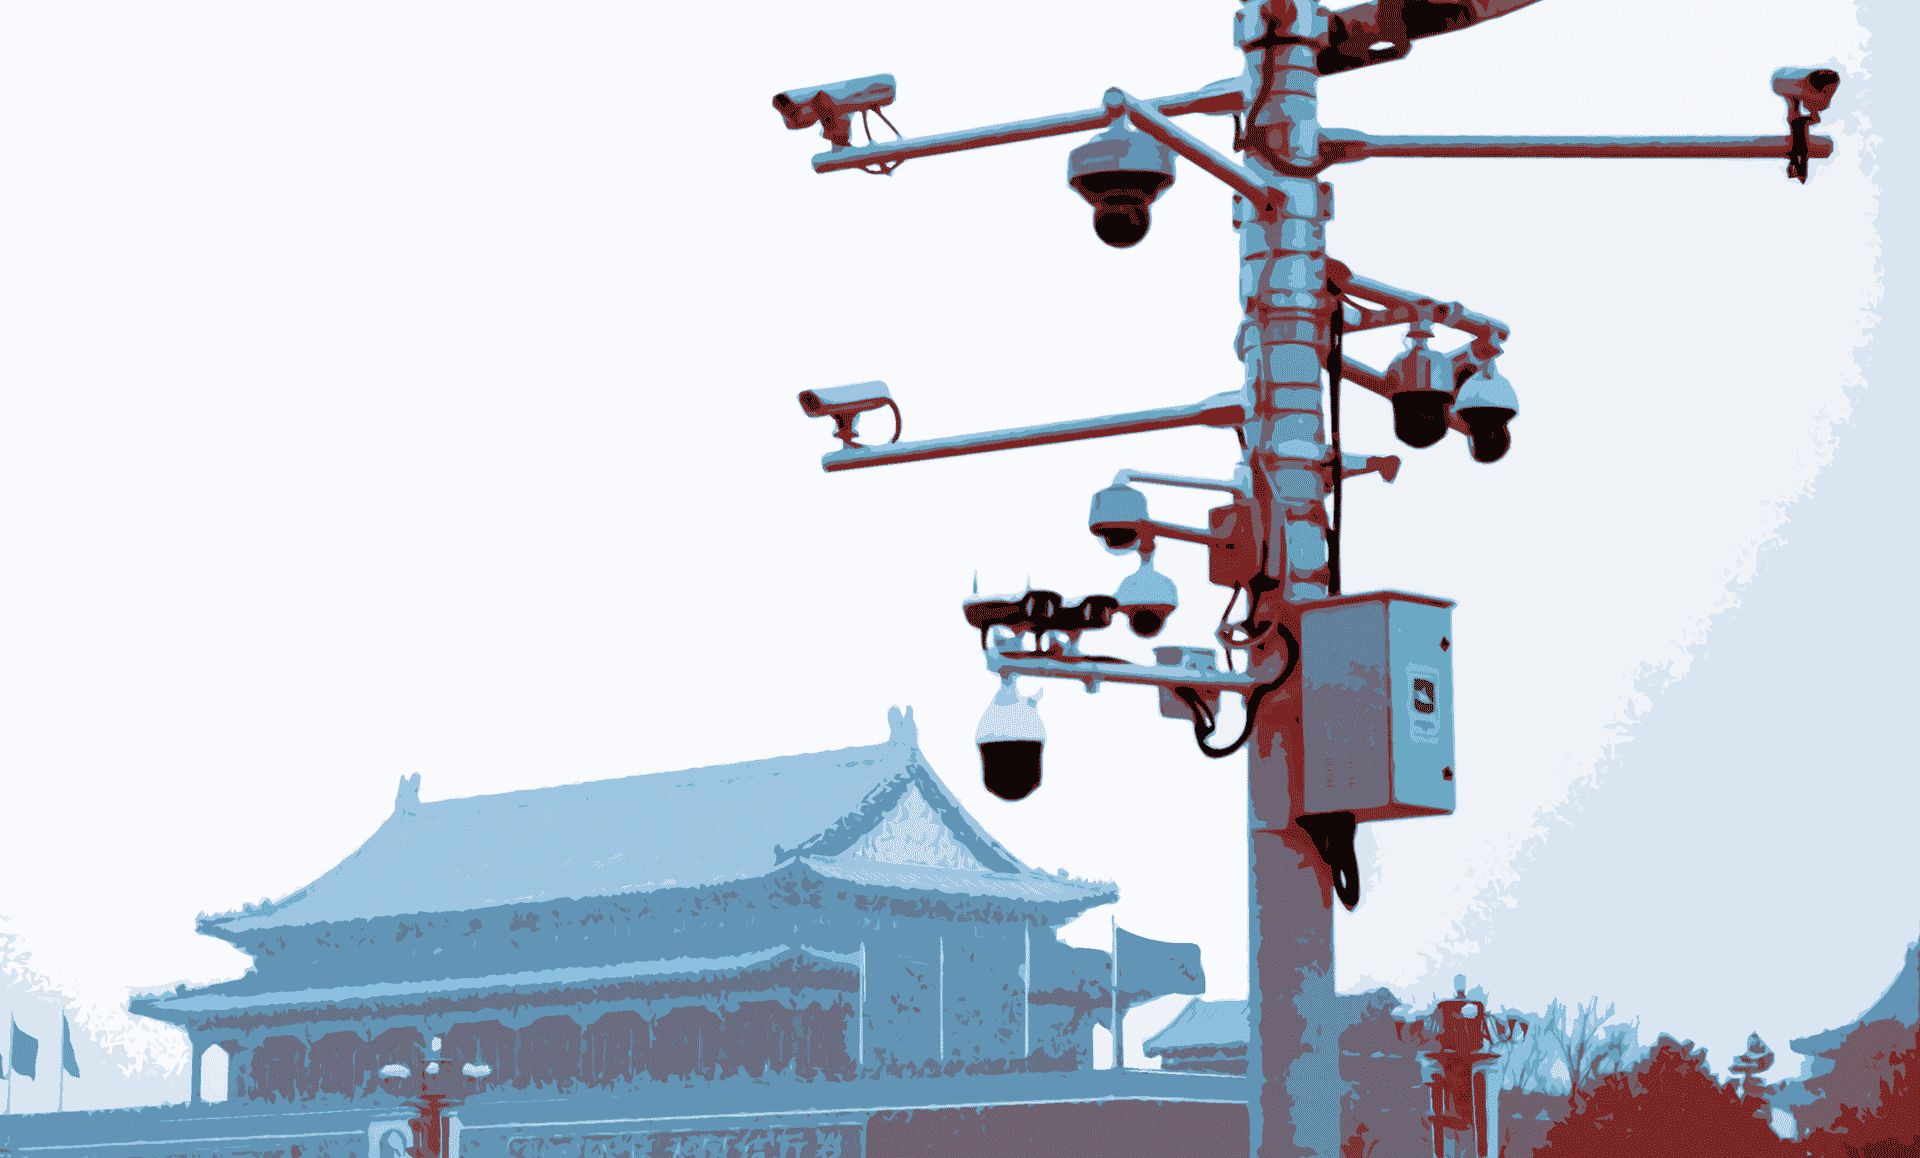 Chinese Occupation and Surveillance